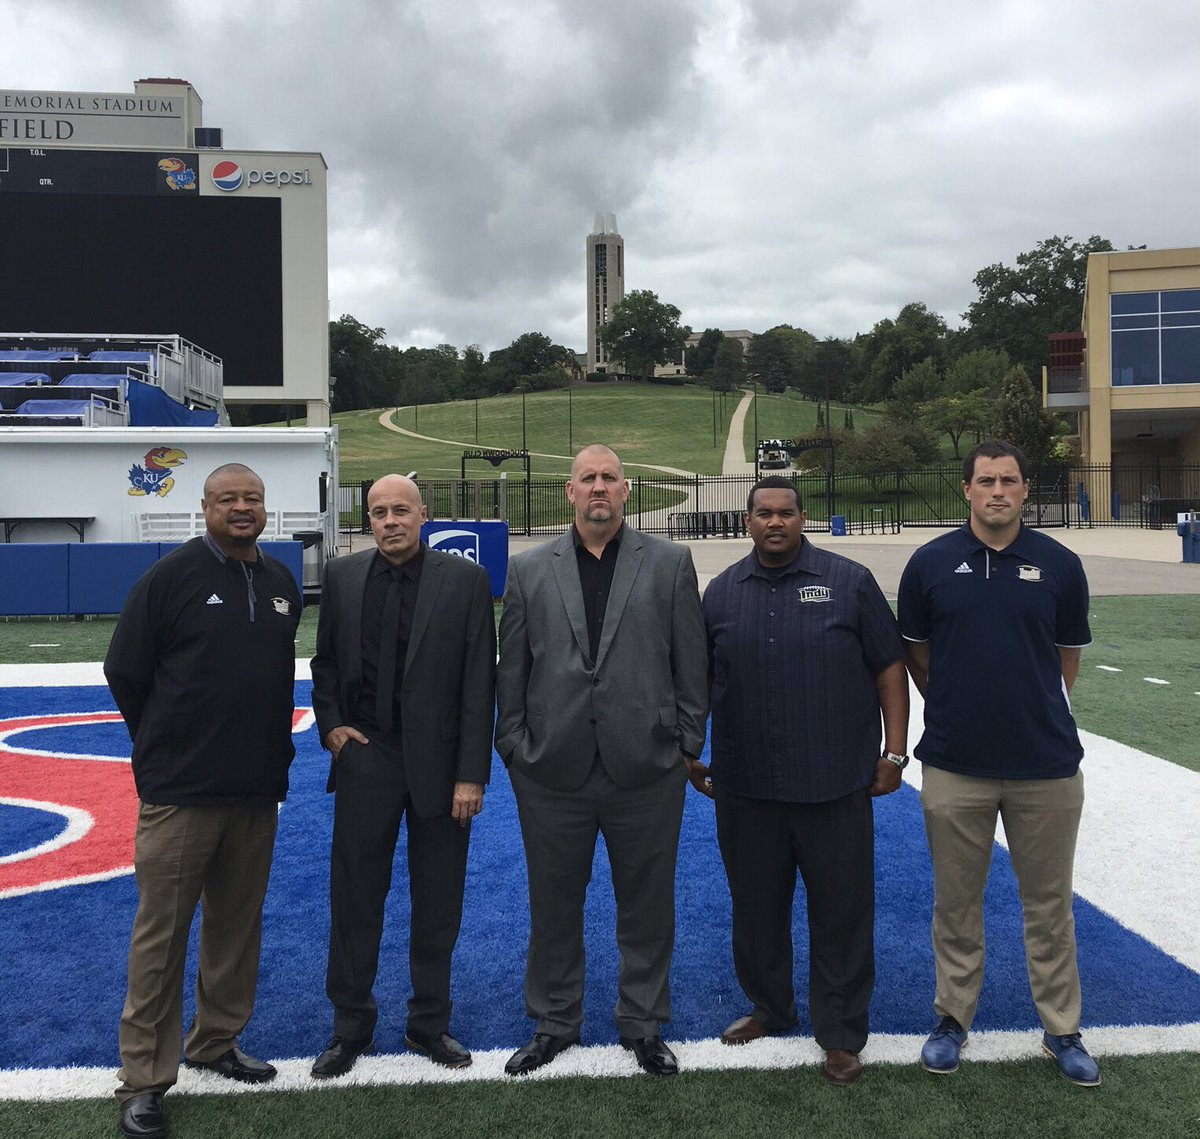 Great visit to KU today with some of the @DreamU_IndyFB coaching staff. @INDYHEADCOACH1 @LastChanceU @CoachMSmith1 @WeezyBurnett33 @CoachDonerson<br>http://pic.twitter.com/JNK5dv7Rou